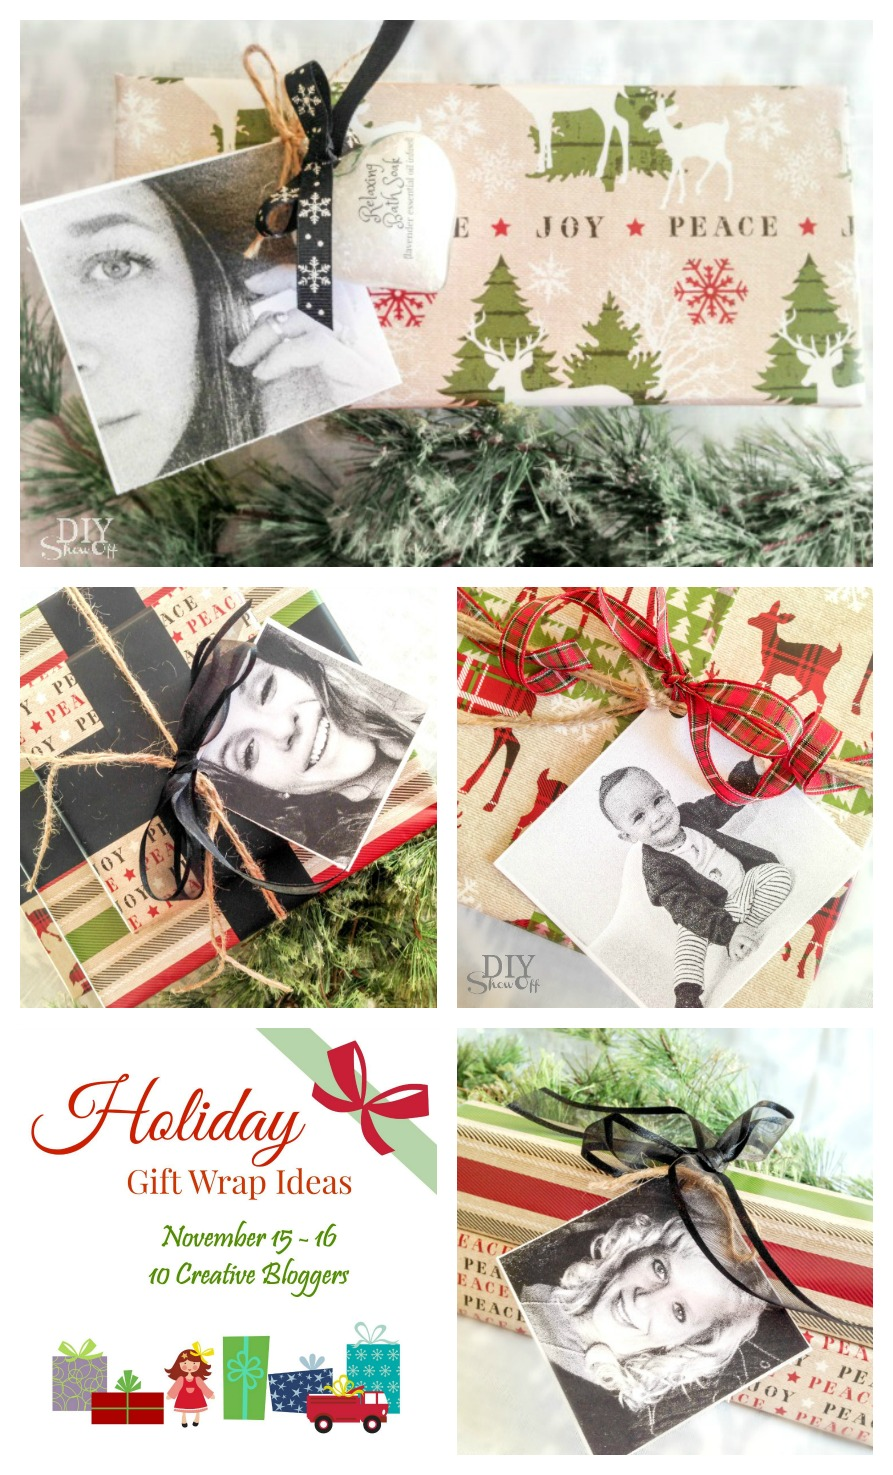 Creative Holiday Gift Wrap Ideas by 10 bloggers @diyshowoff